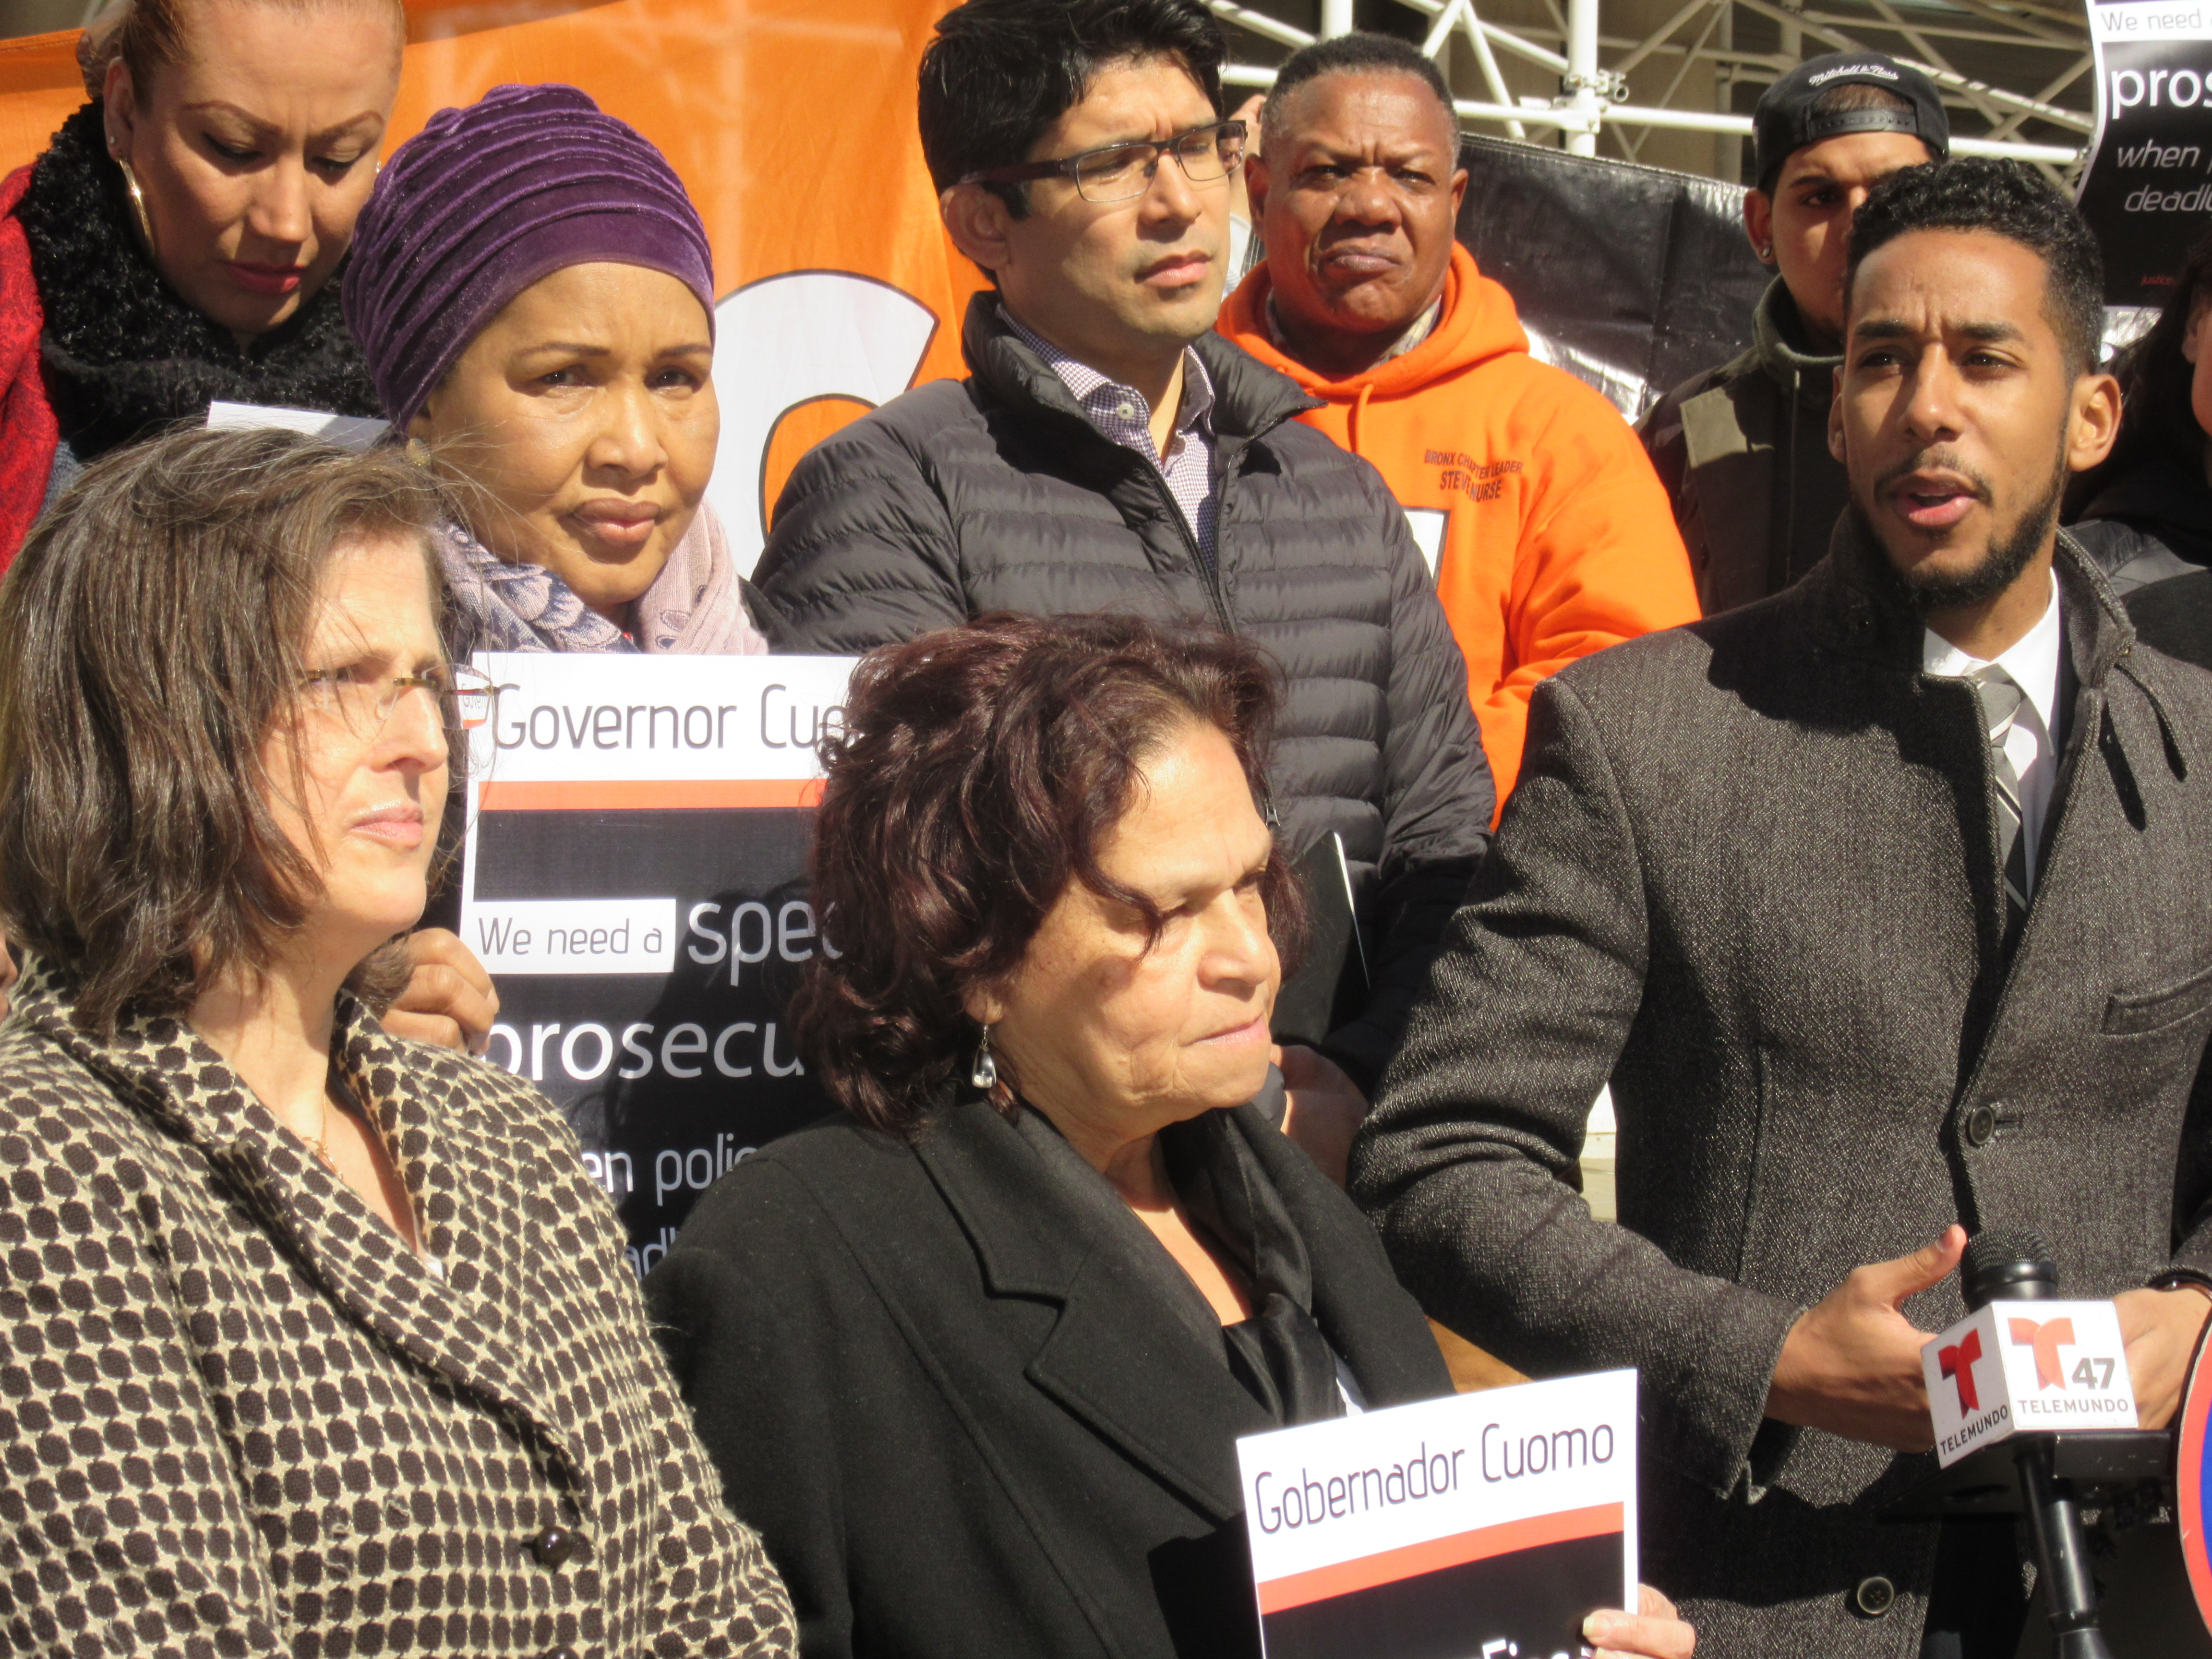 Councilwoman Helen Rosenthal, left, with Councilman Carlos Menchaca, center, and Councilman Antonio Reynoso, right (Photo: Will Bredderman/New York Observer).